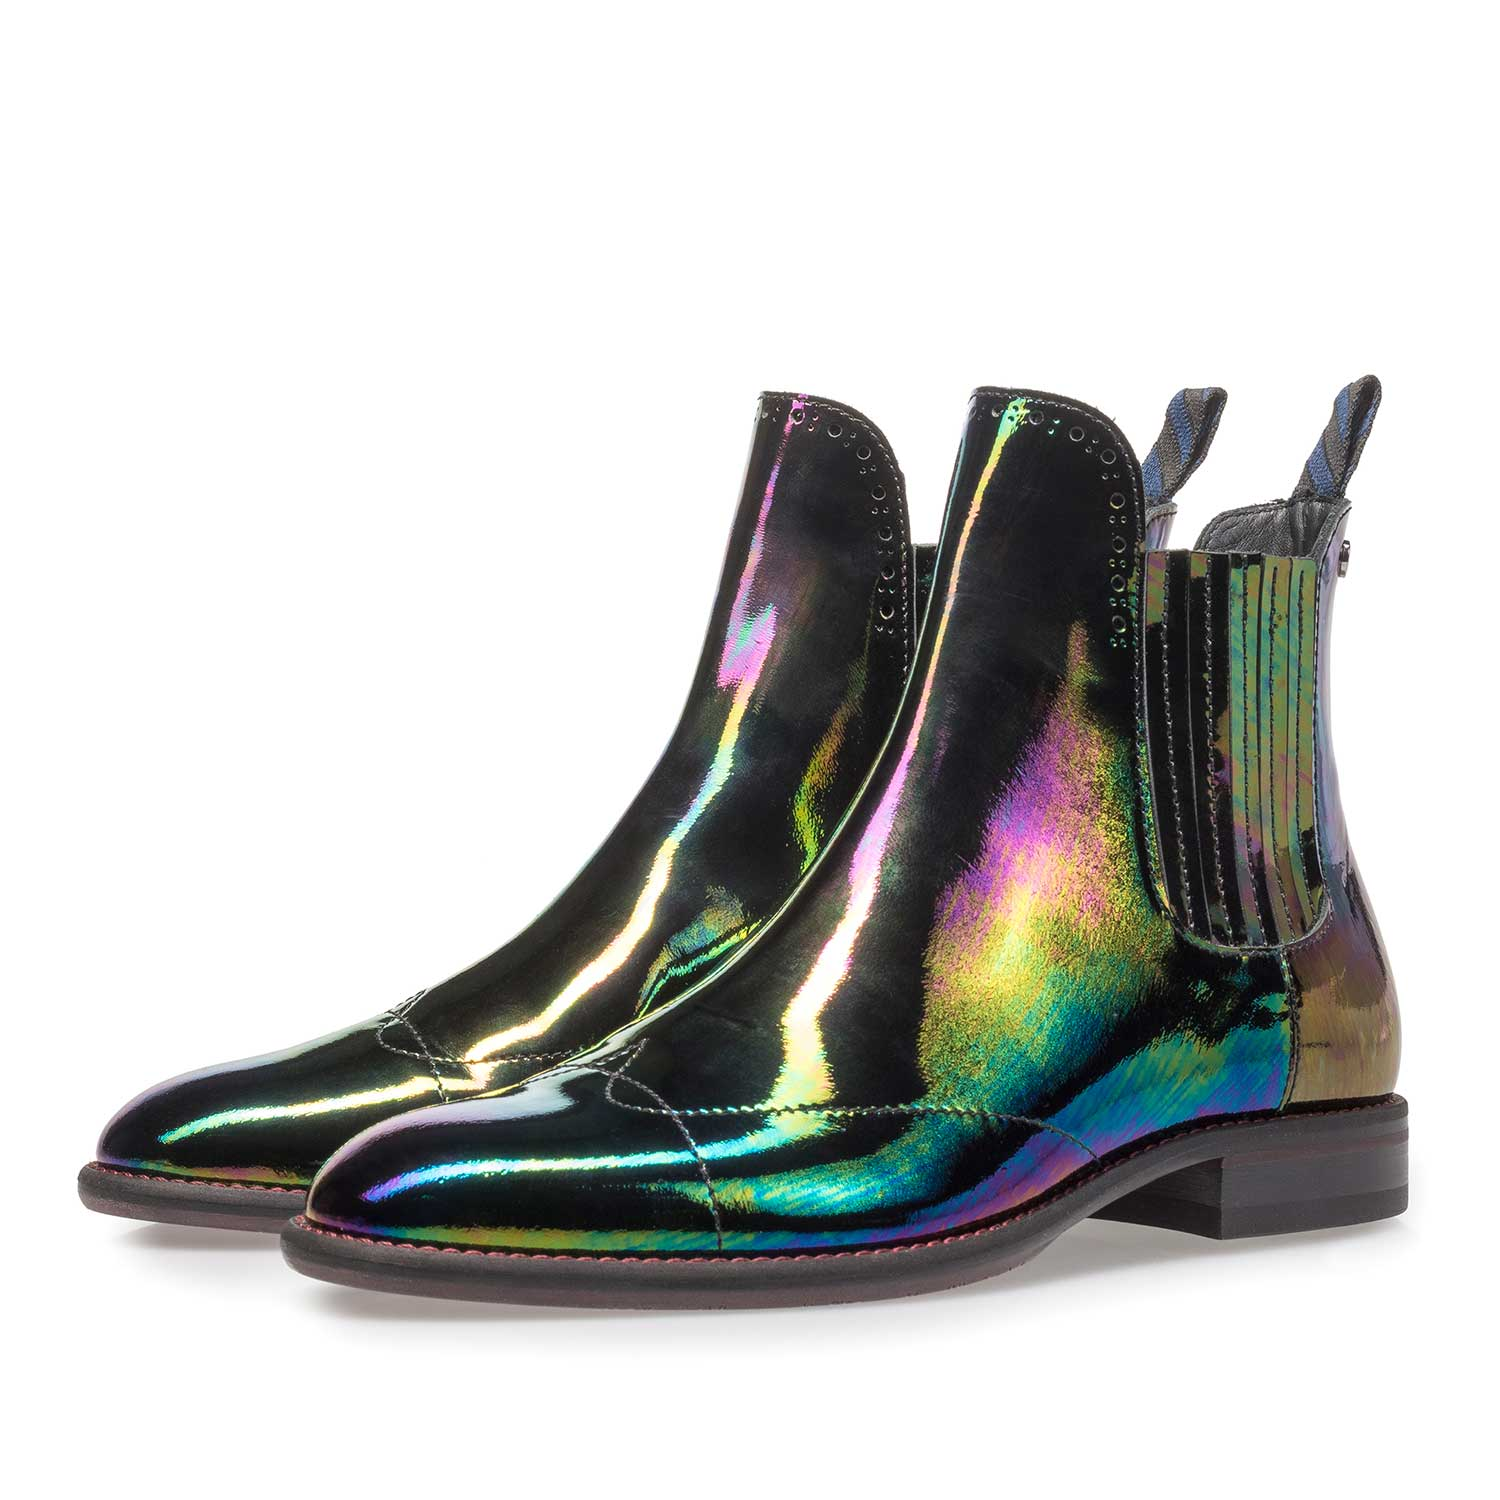 85601/02 - Multi-coloured patent leather Chelsea boot